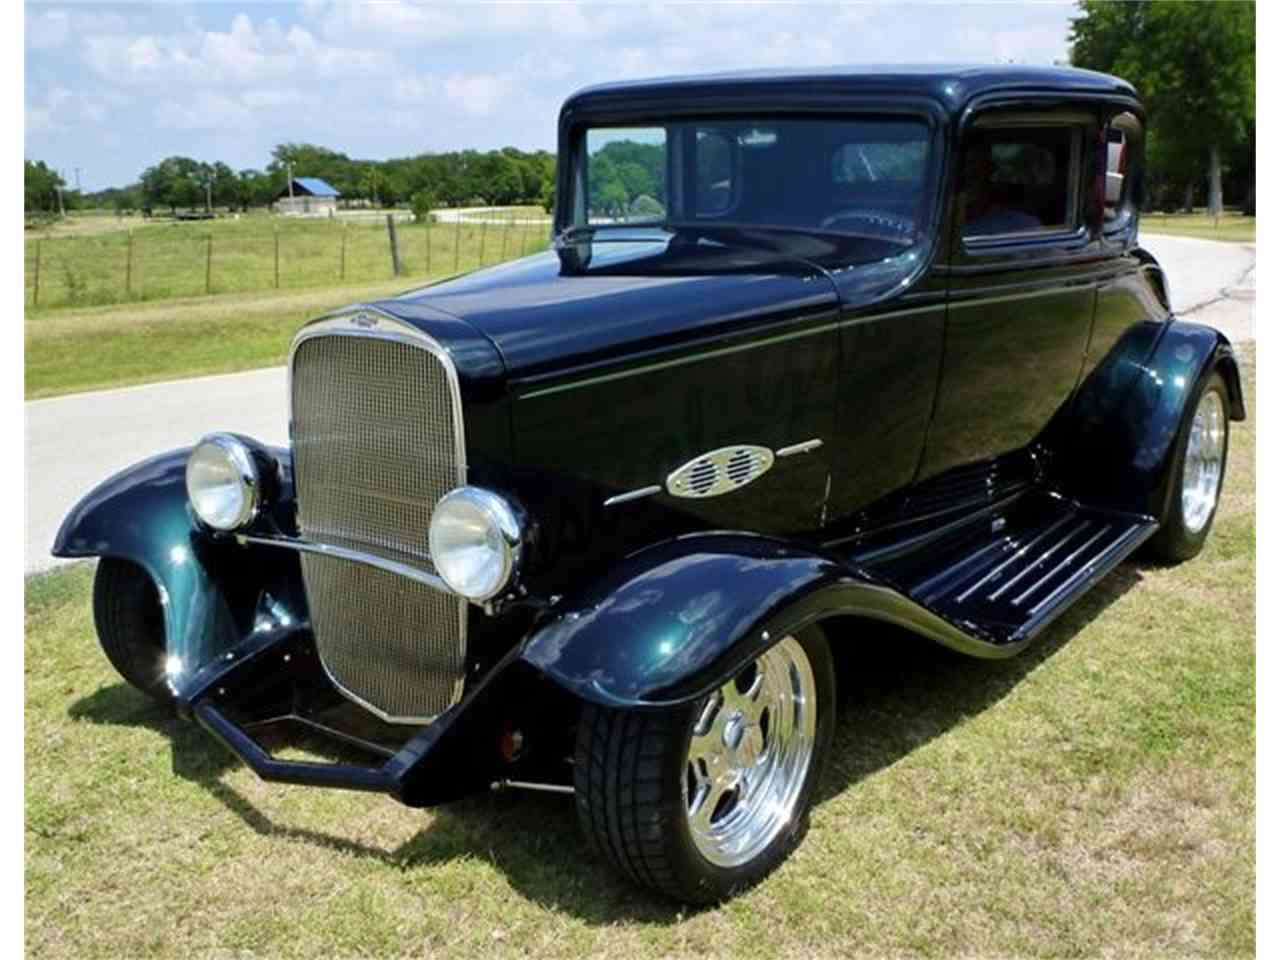 Large Picture of 1932 Chevrolet 5-Window Coupe - $64,995.00 Offered by Classical Gas Enterprises - LUJ8